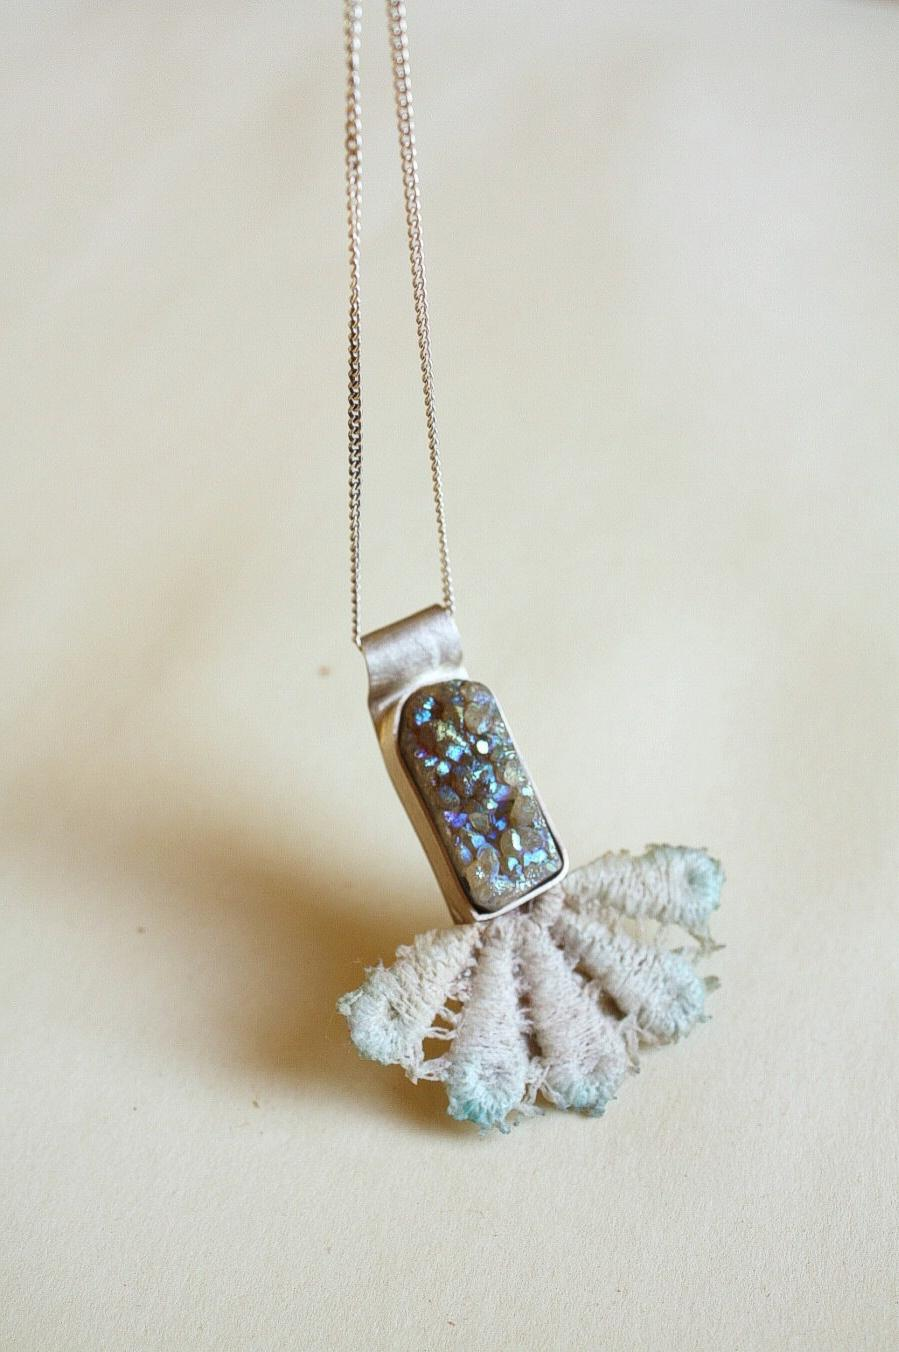 Vintage Lace Necklace sterling silver with druzy quartz stone light blue